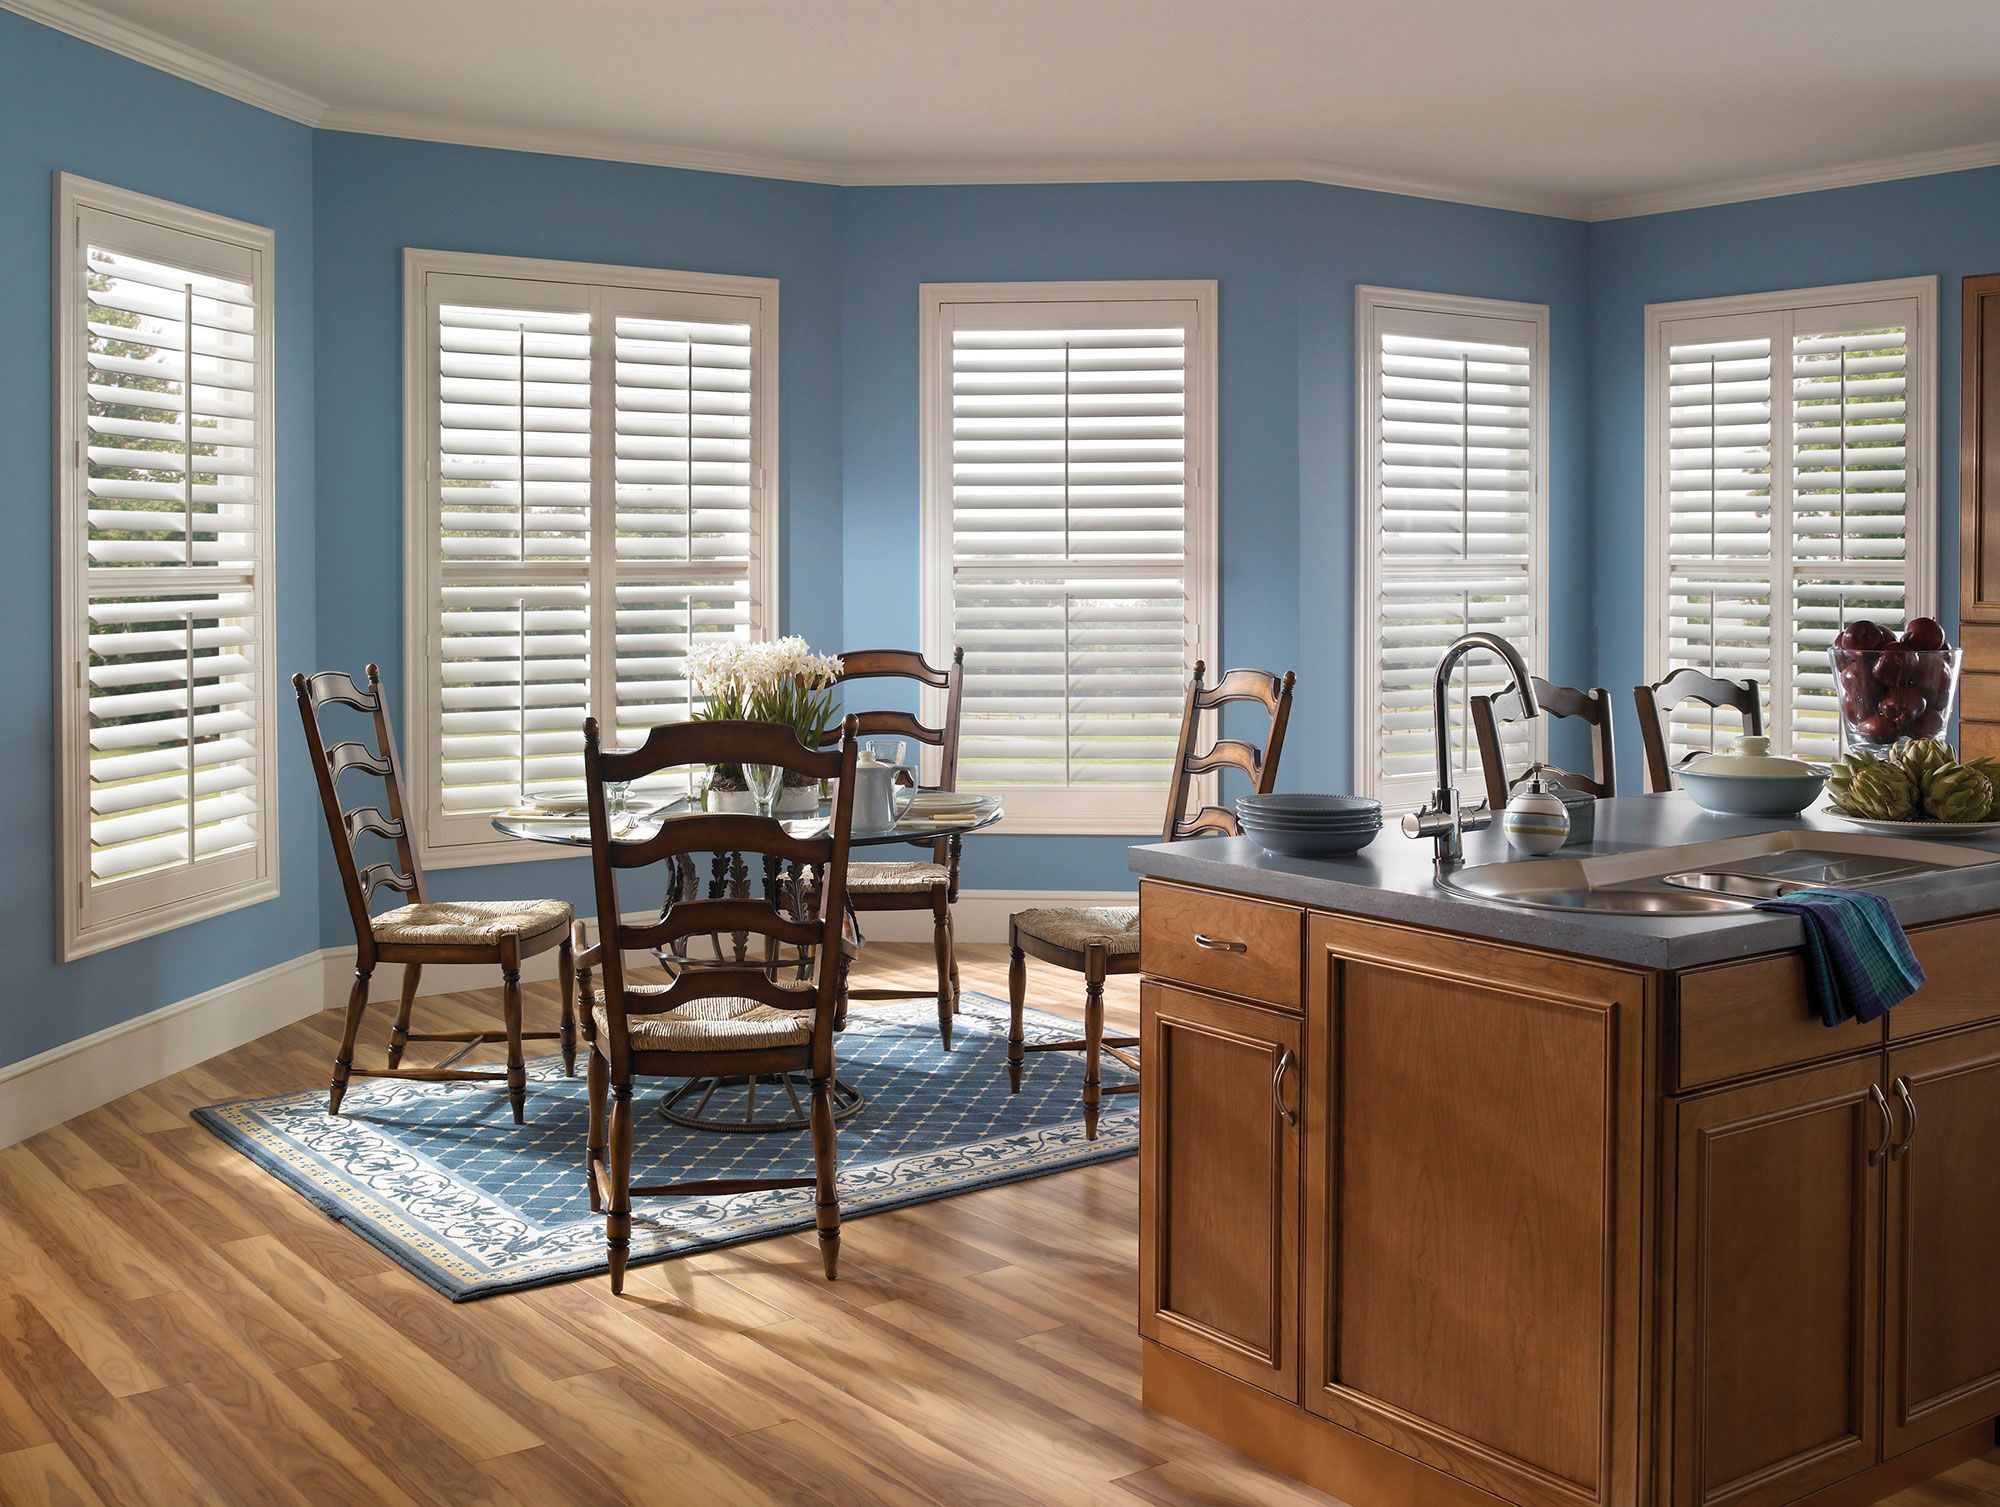 rocklin spot day shutters lonetree yp blvd ca blind reviews mip blinds com ste